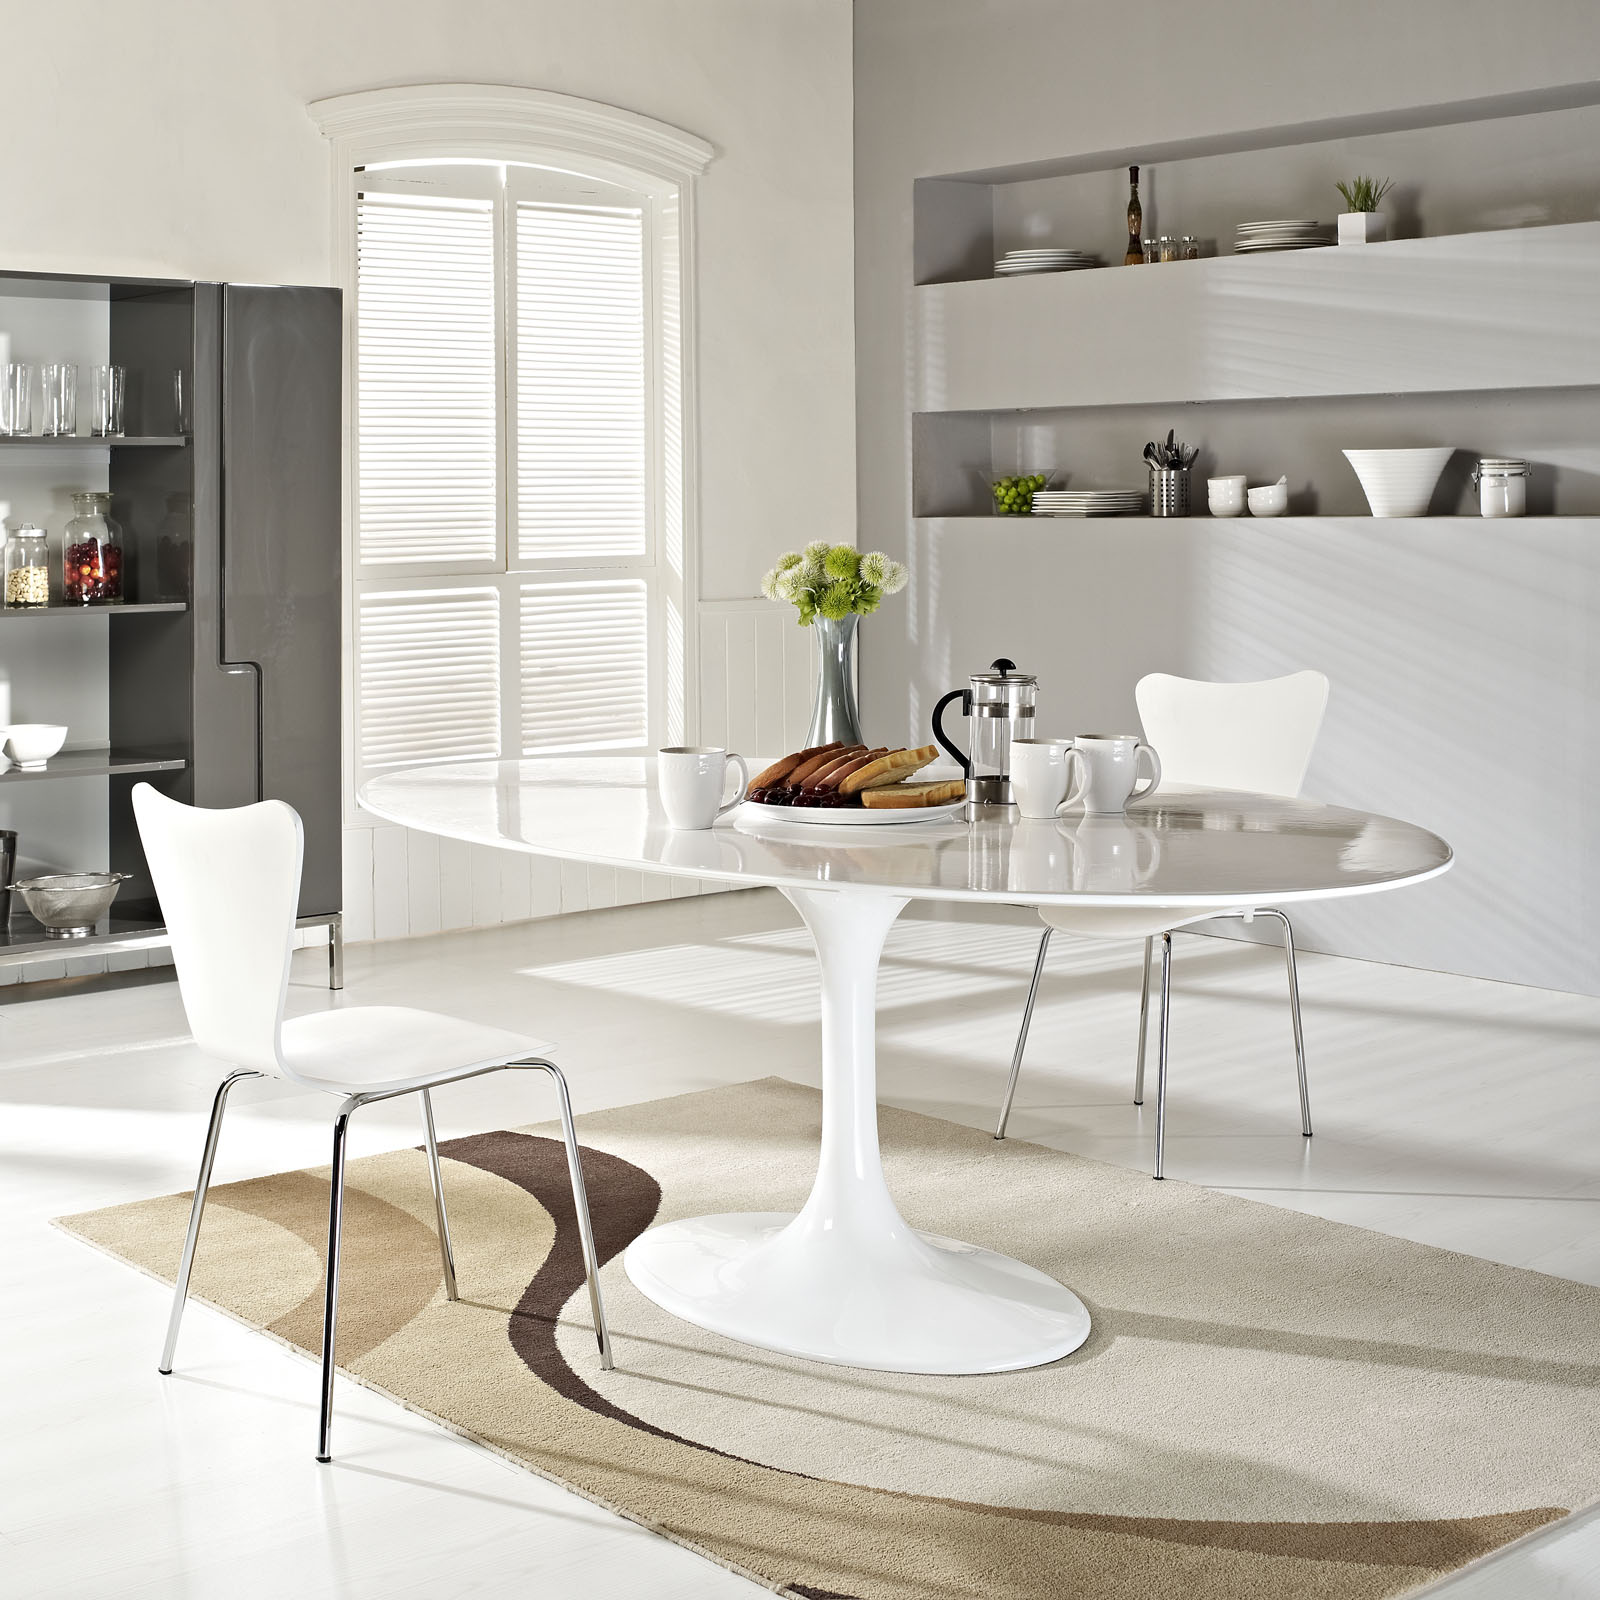 Odyssey Oval Dining Table; Odyssey Modern Oval Dining Table